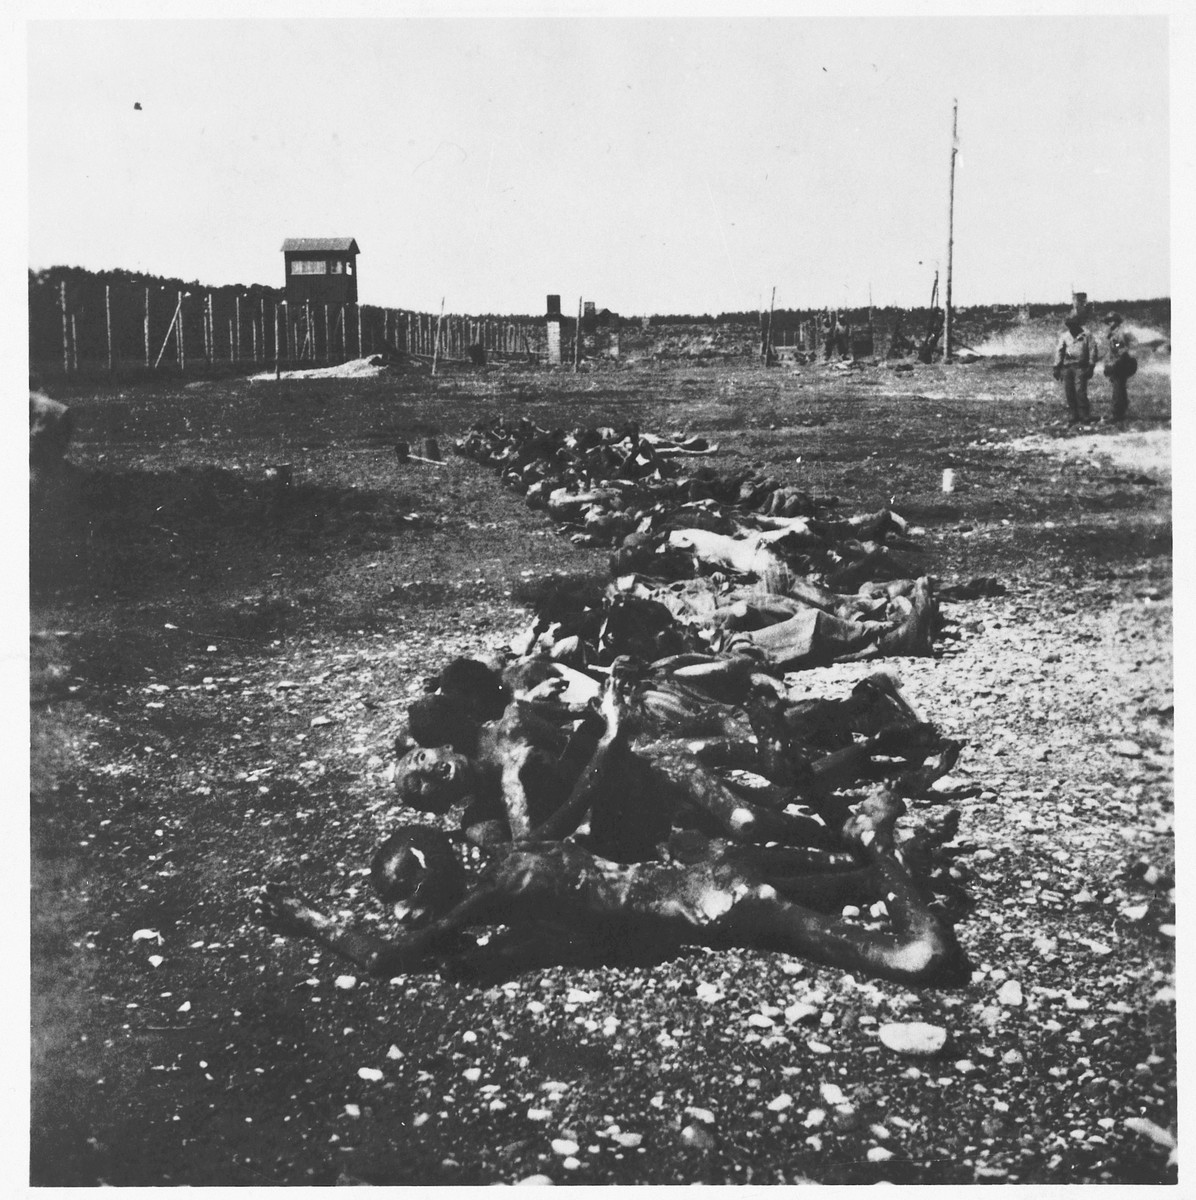 Bodies are laid out in a row for burial in the Dachau concentration camp.